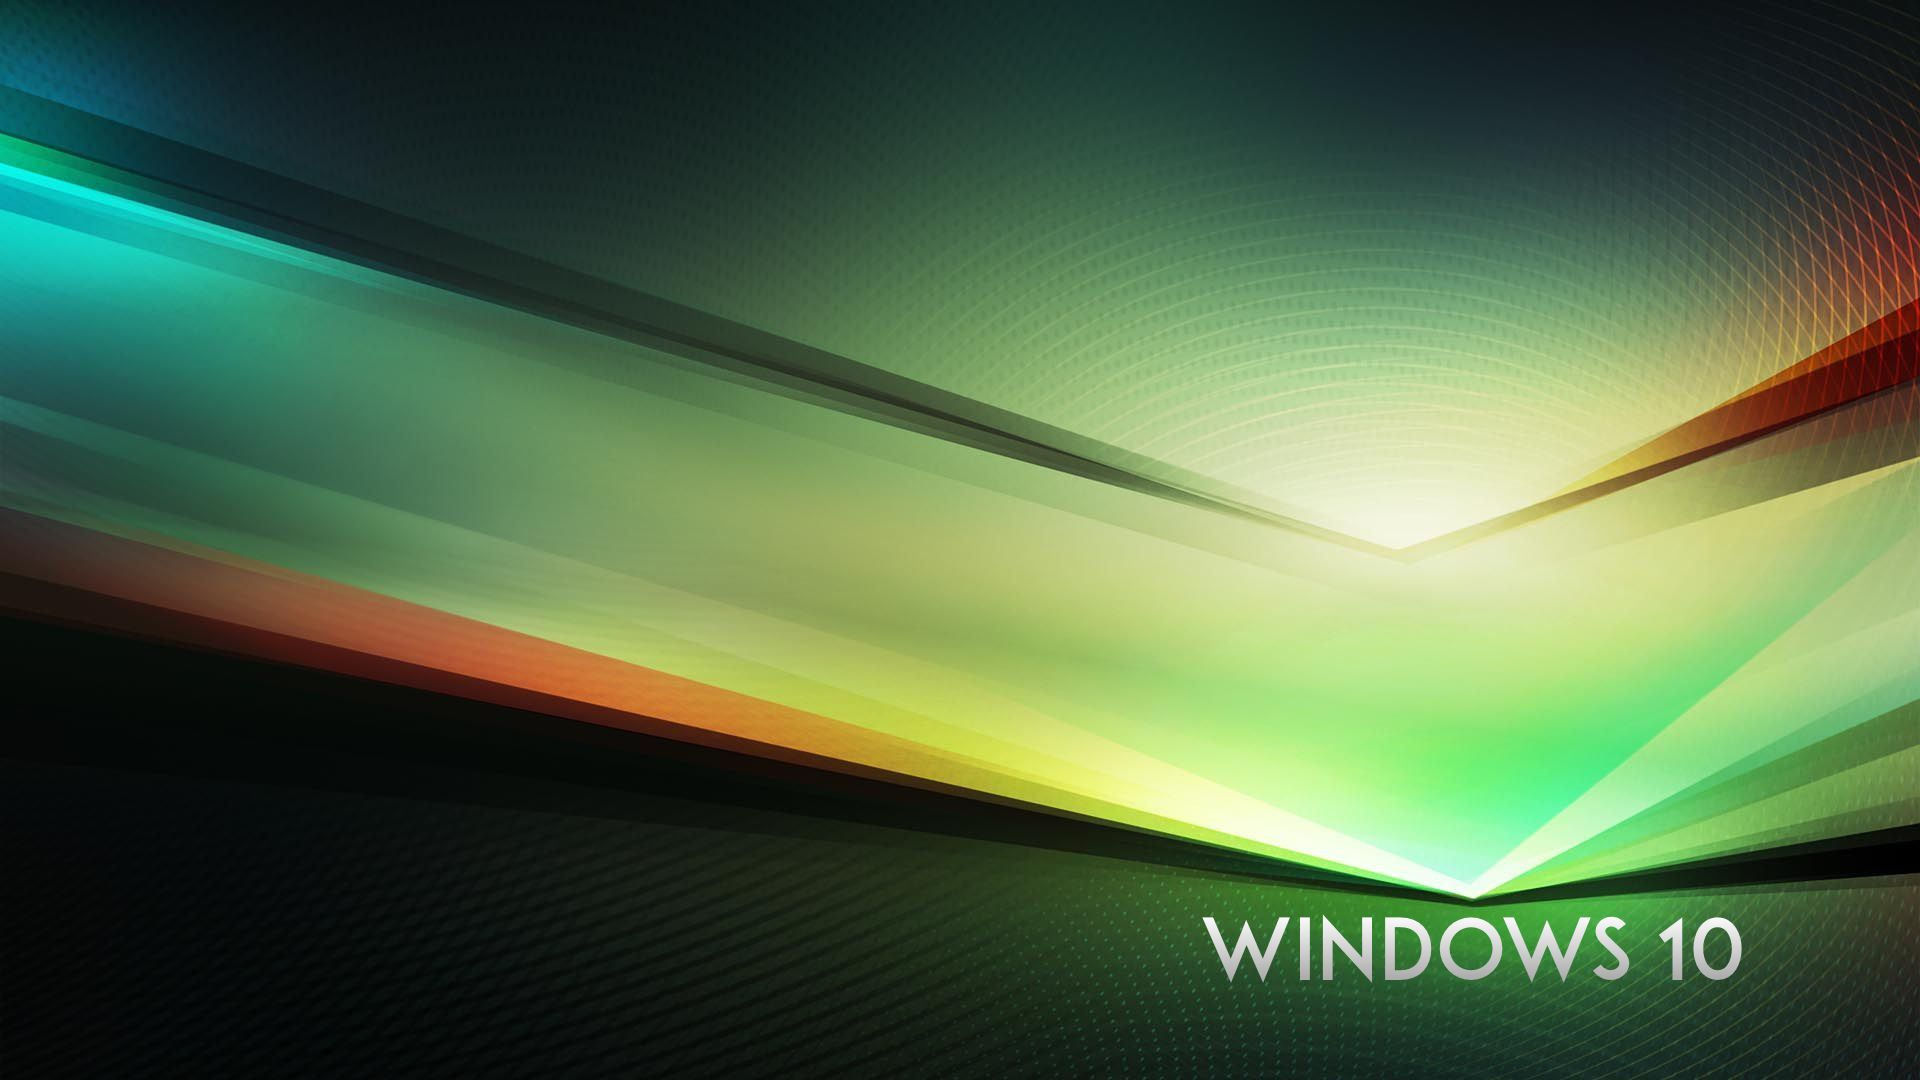 Windows 10 creator wallpaper